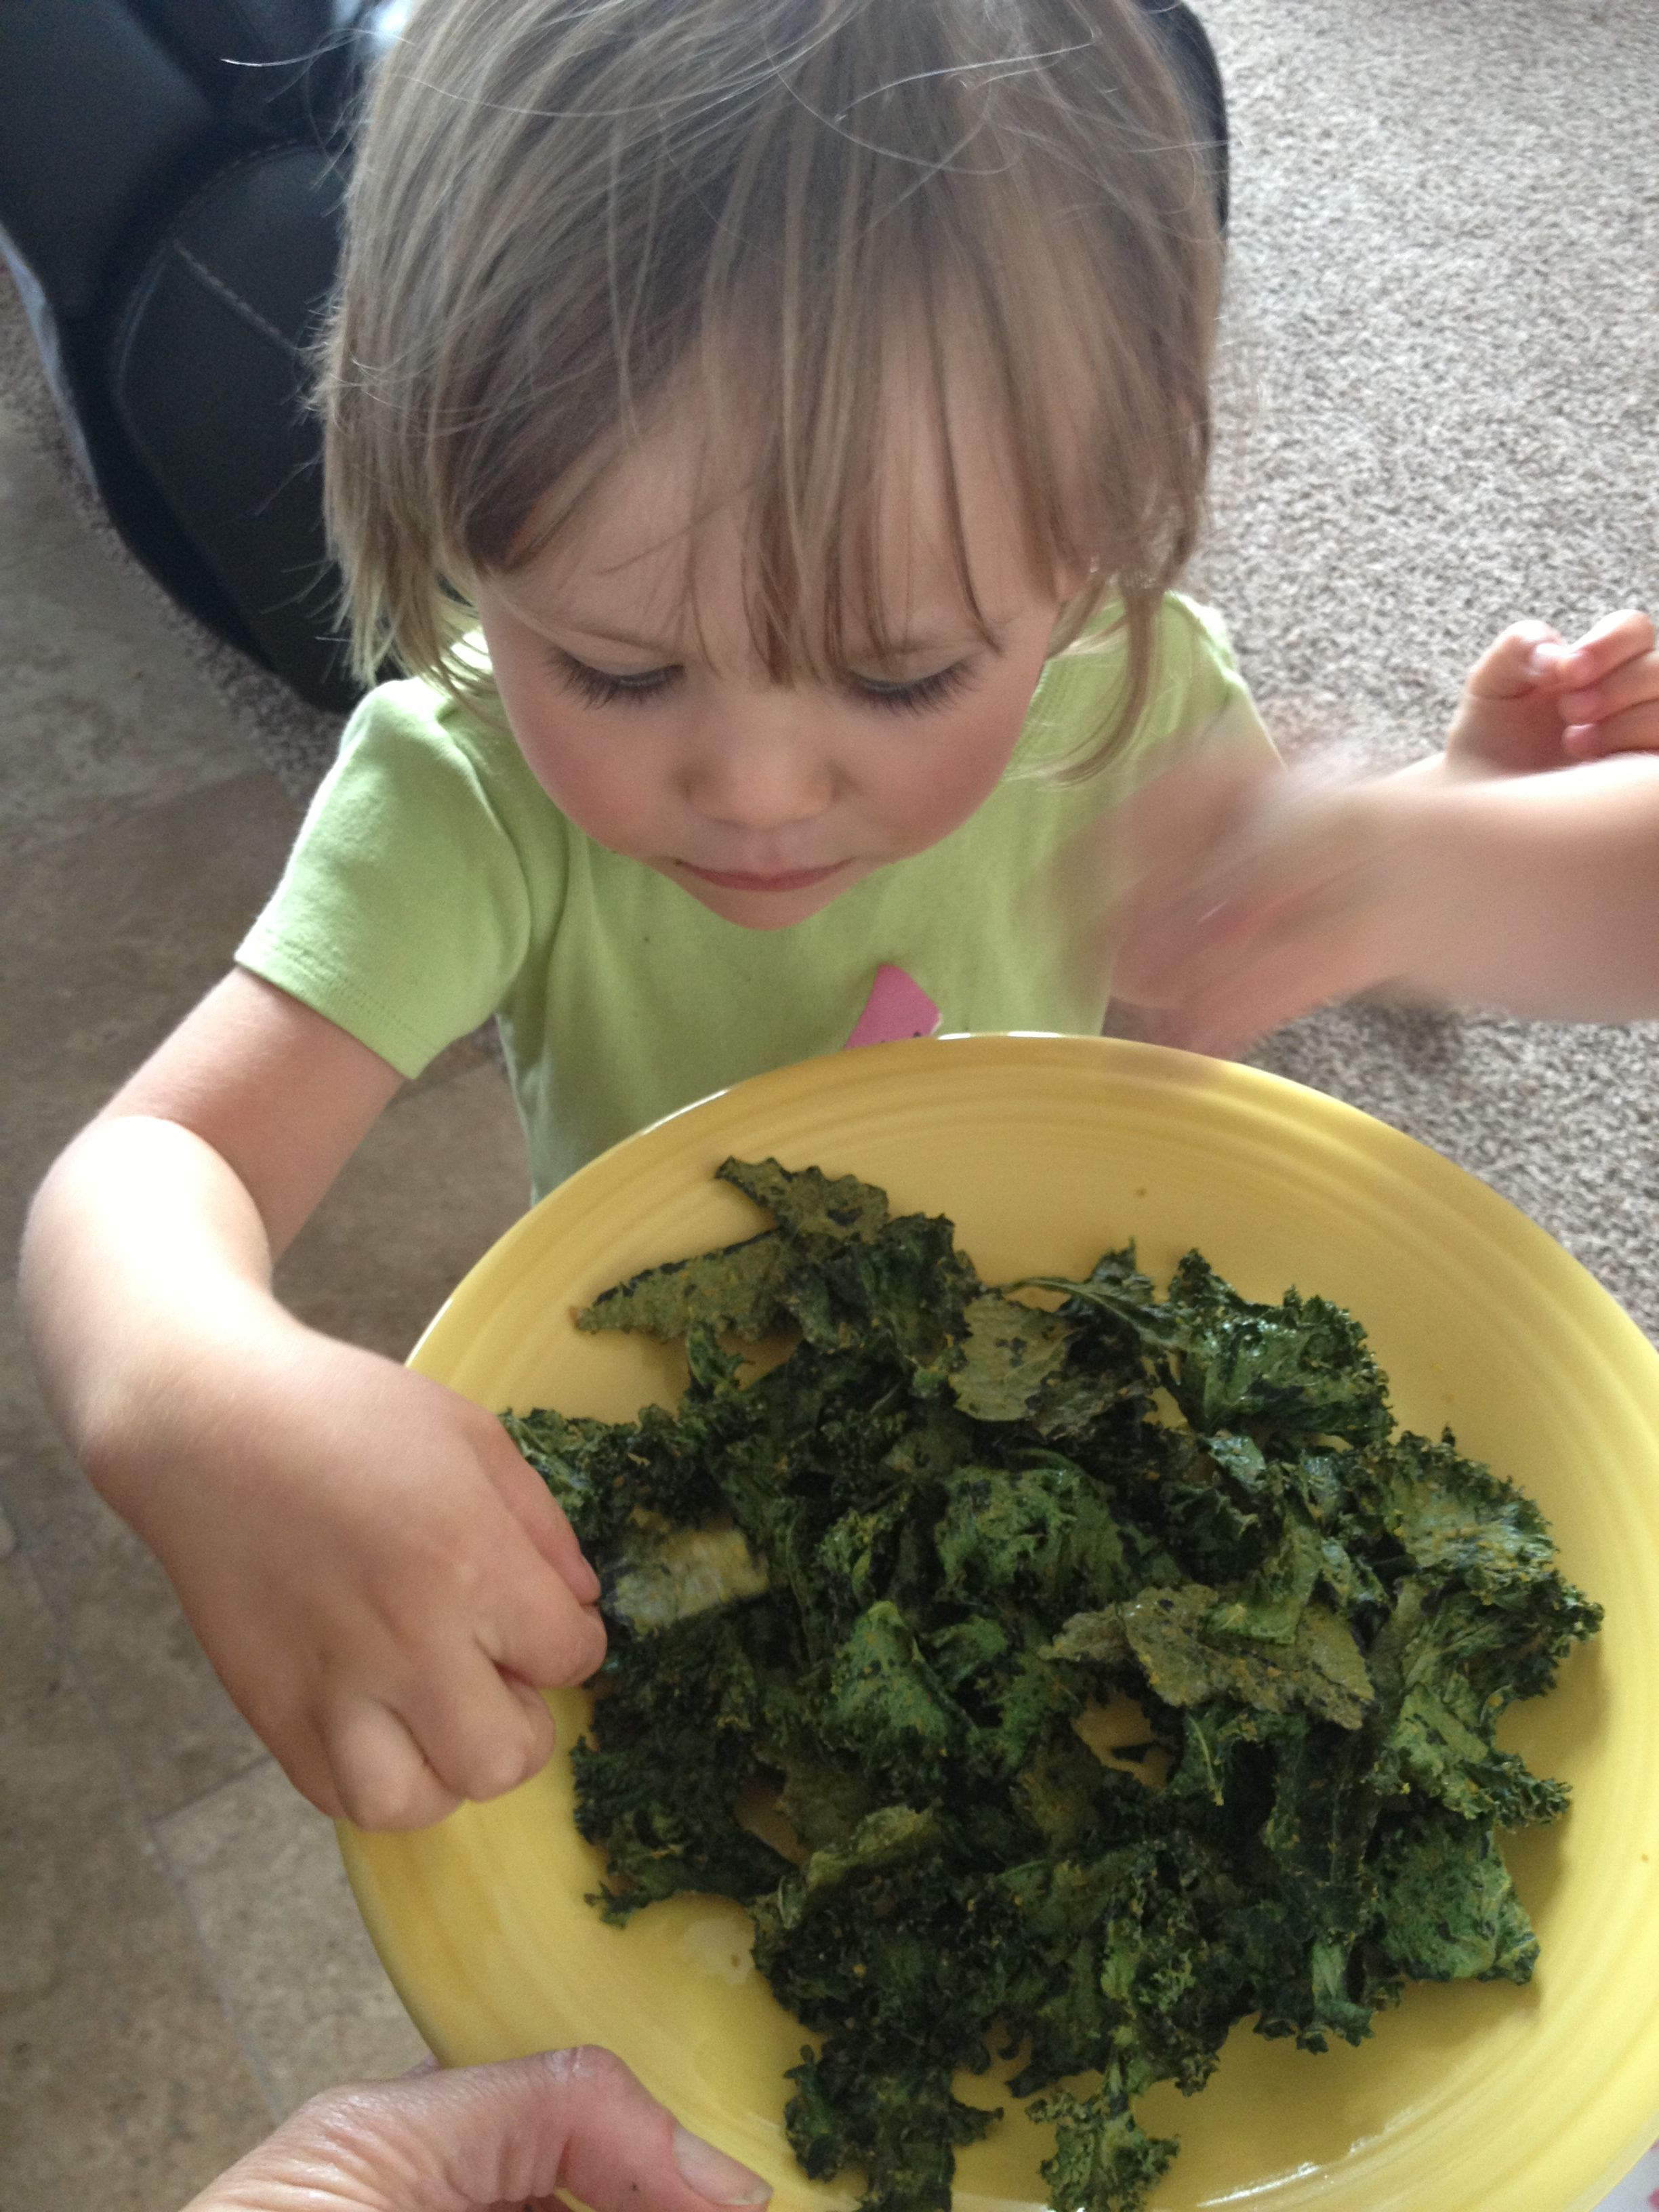 Roasted kale chips. From our garden. Check out the flurry of hands trying to grab them!